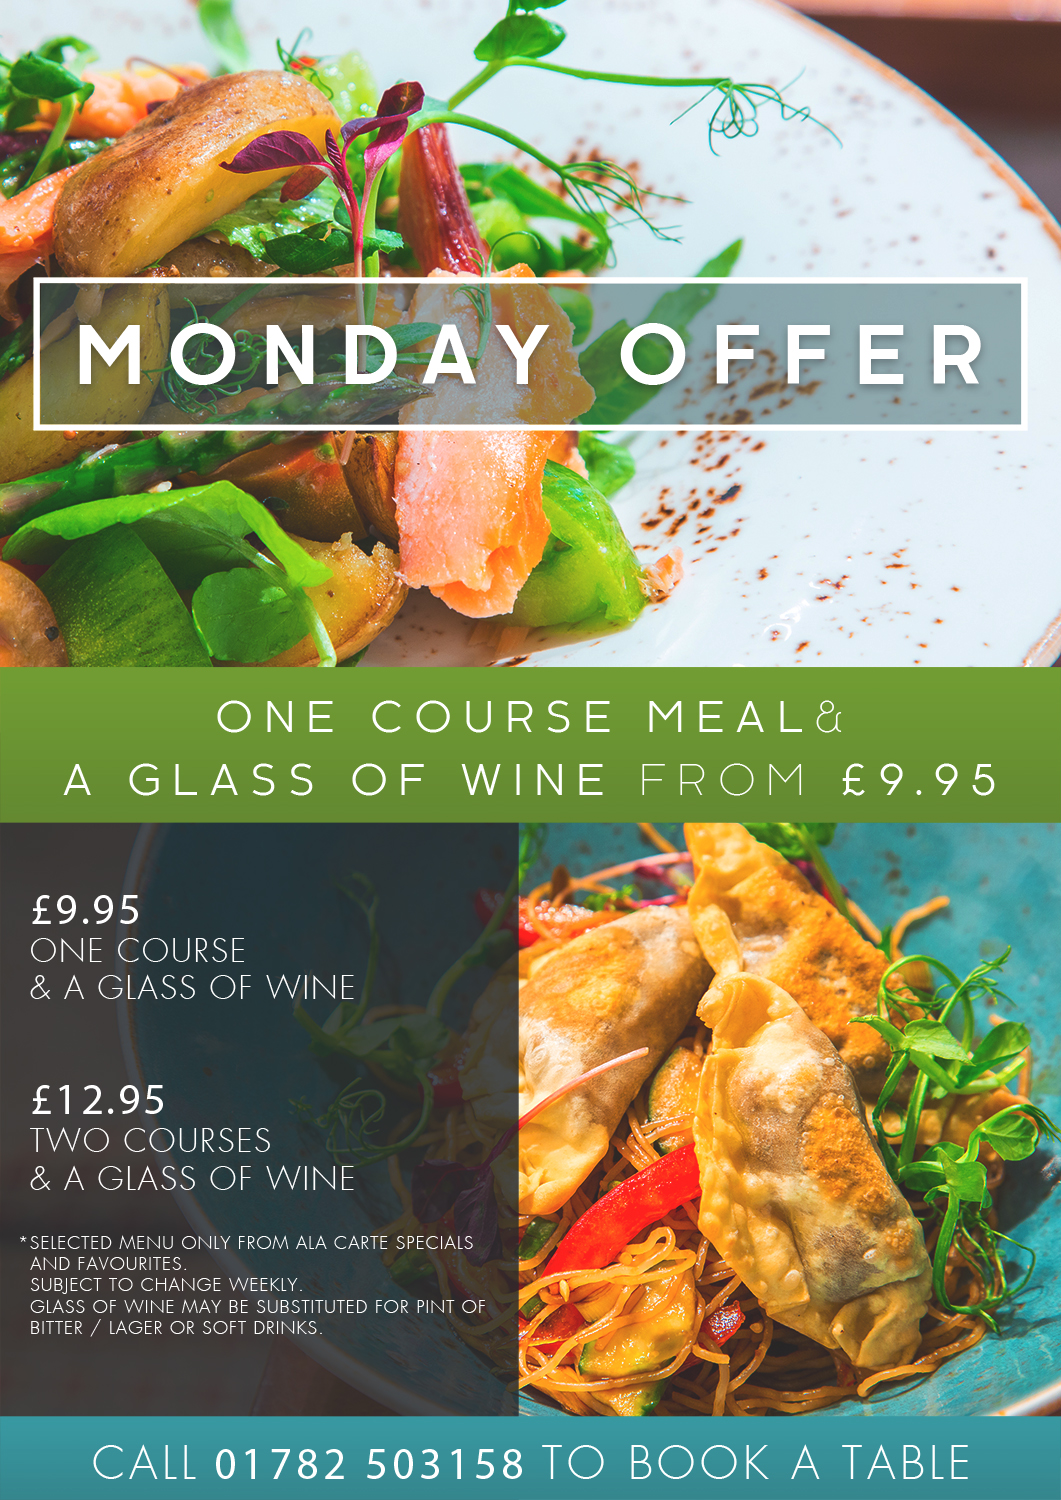 Come and try our delicious new Monday Night Offer, to book a table call 01782-503158 option 2